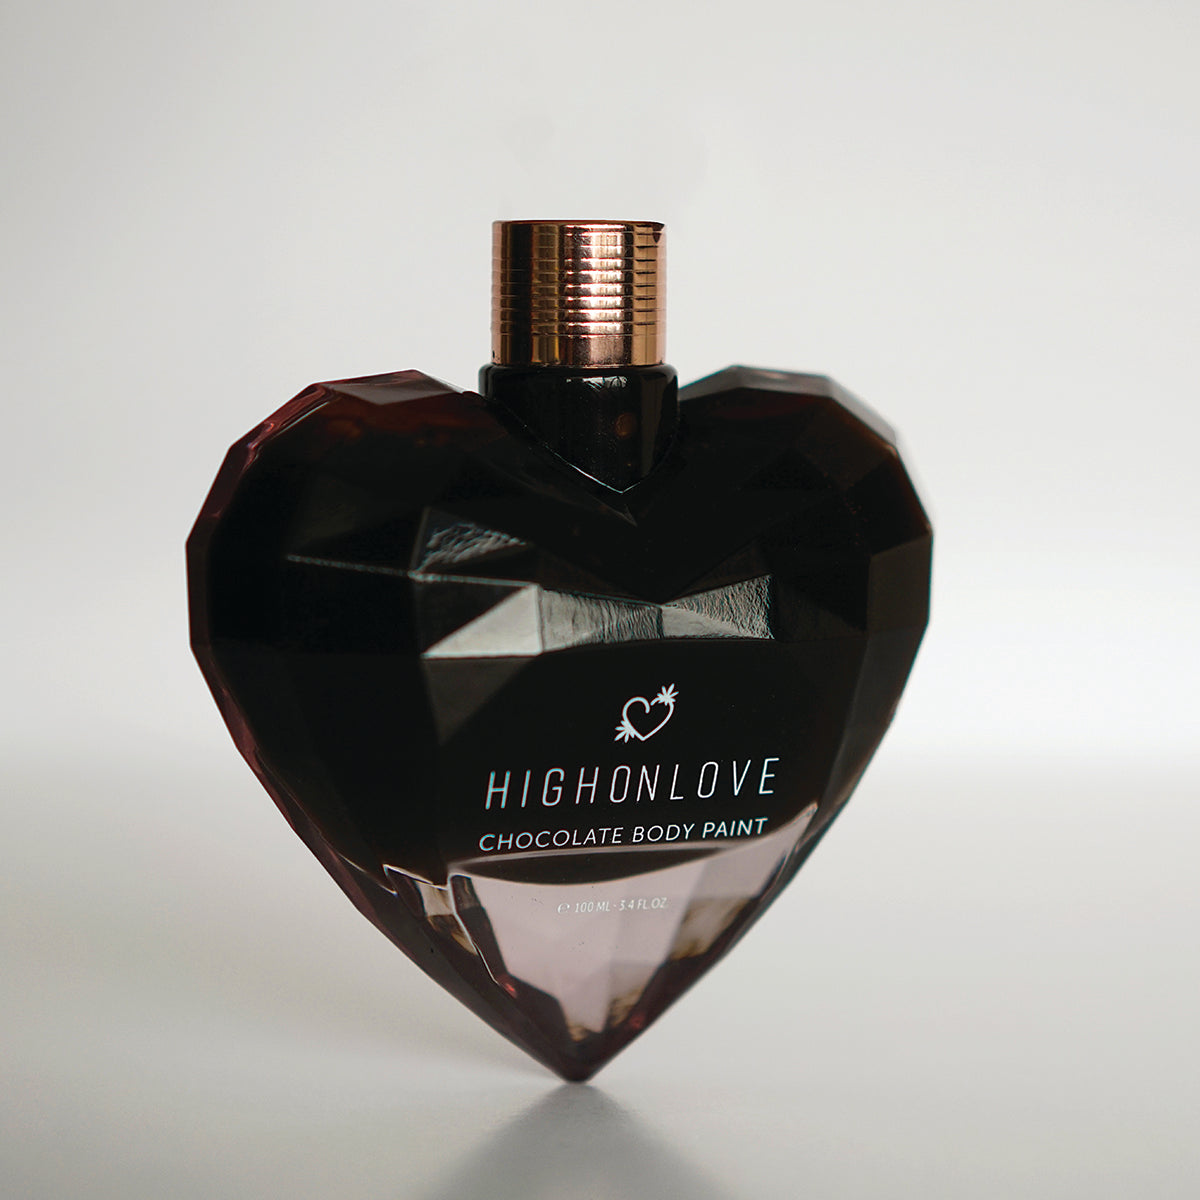 High on Love Chocolate Body Paint 100ml